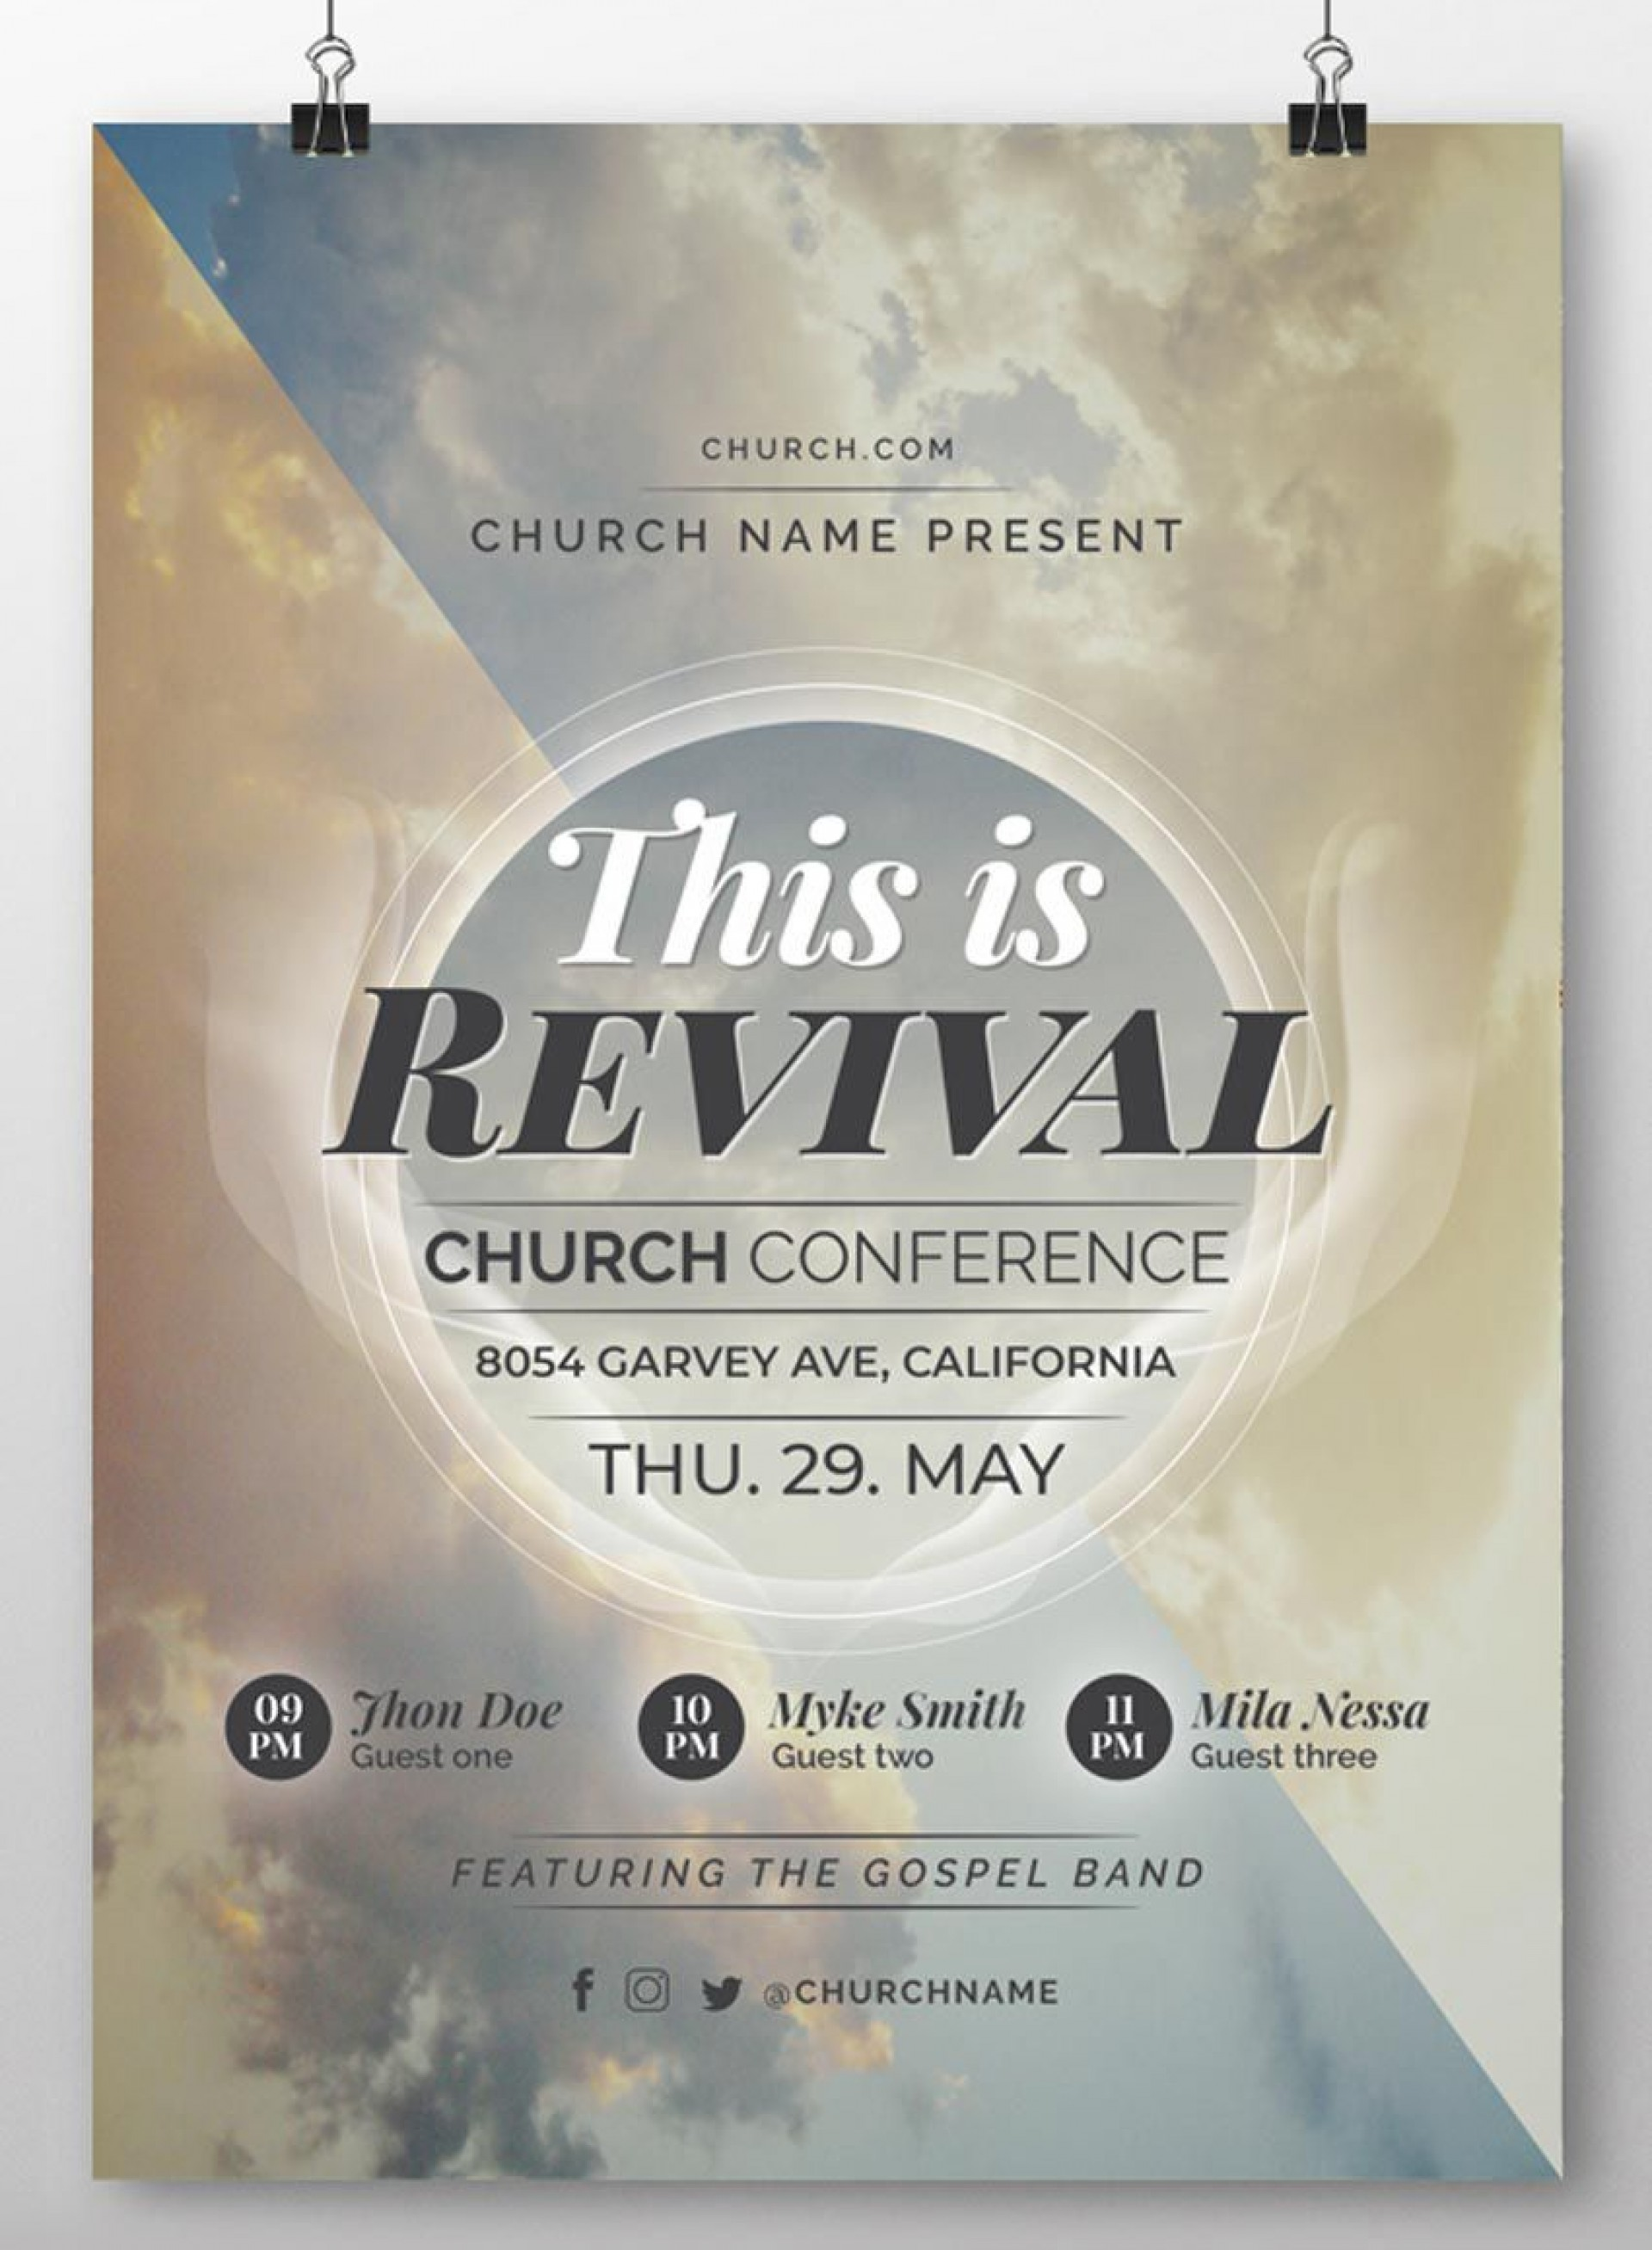 005 Unbelievable Church Flyer Template Free Download Design  Event Psd1920